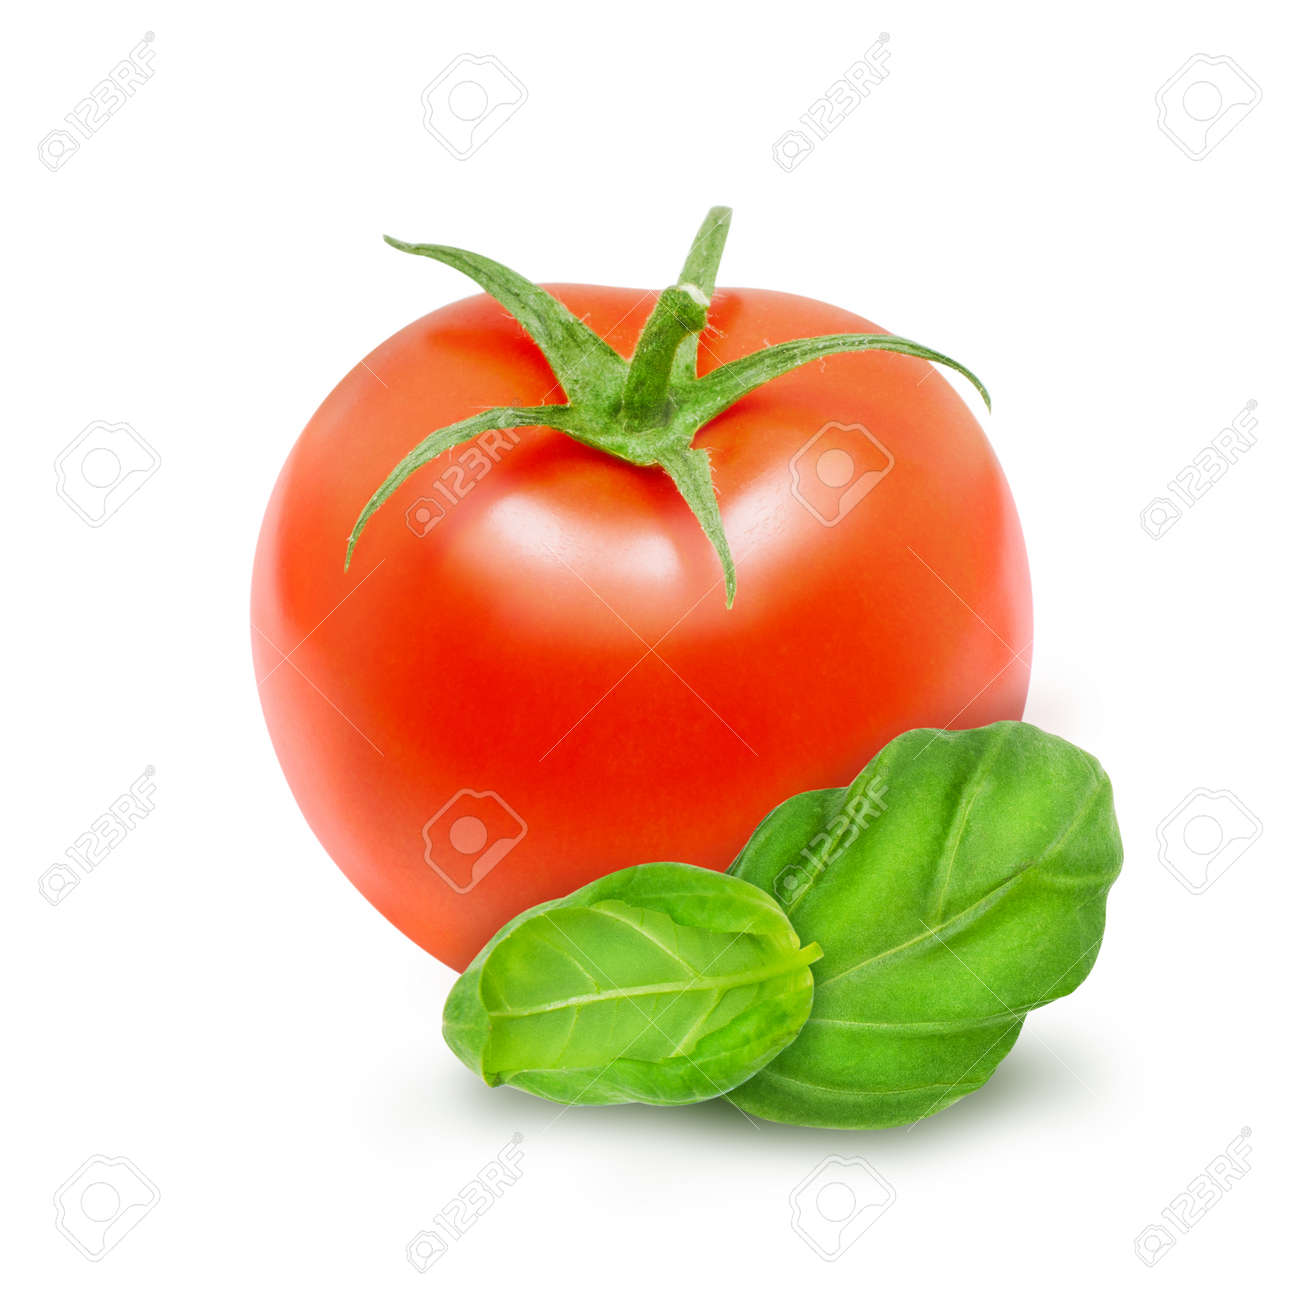 Fresh tomato with green leaves of basil isolated on a white background. Design element for product label, catalog print, web use. - 150175995